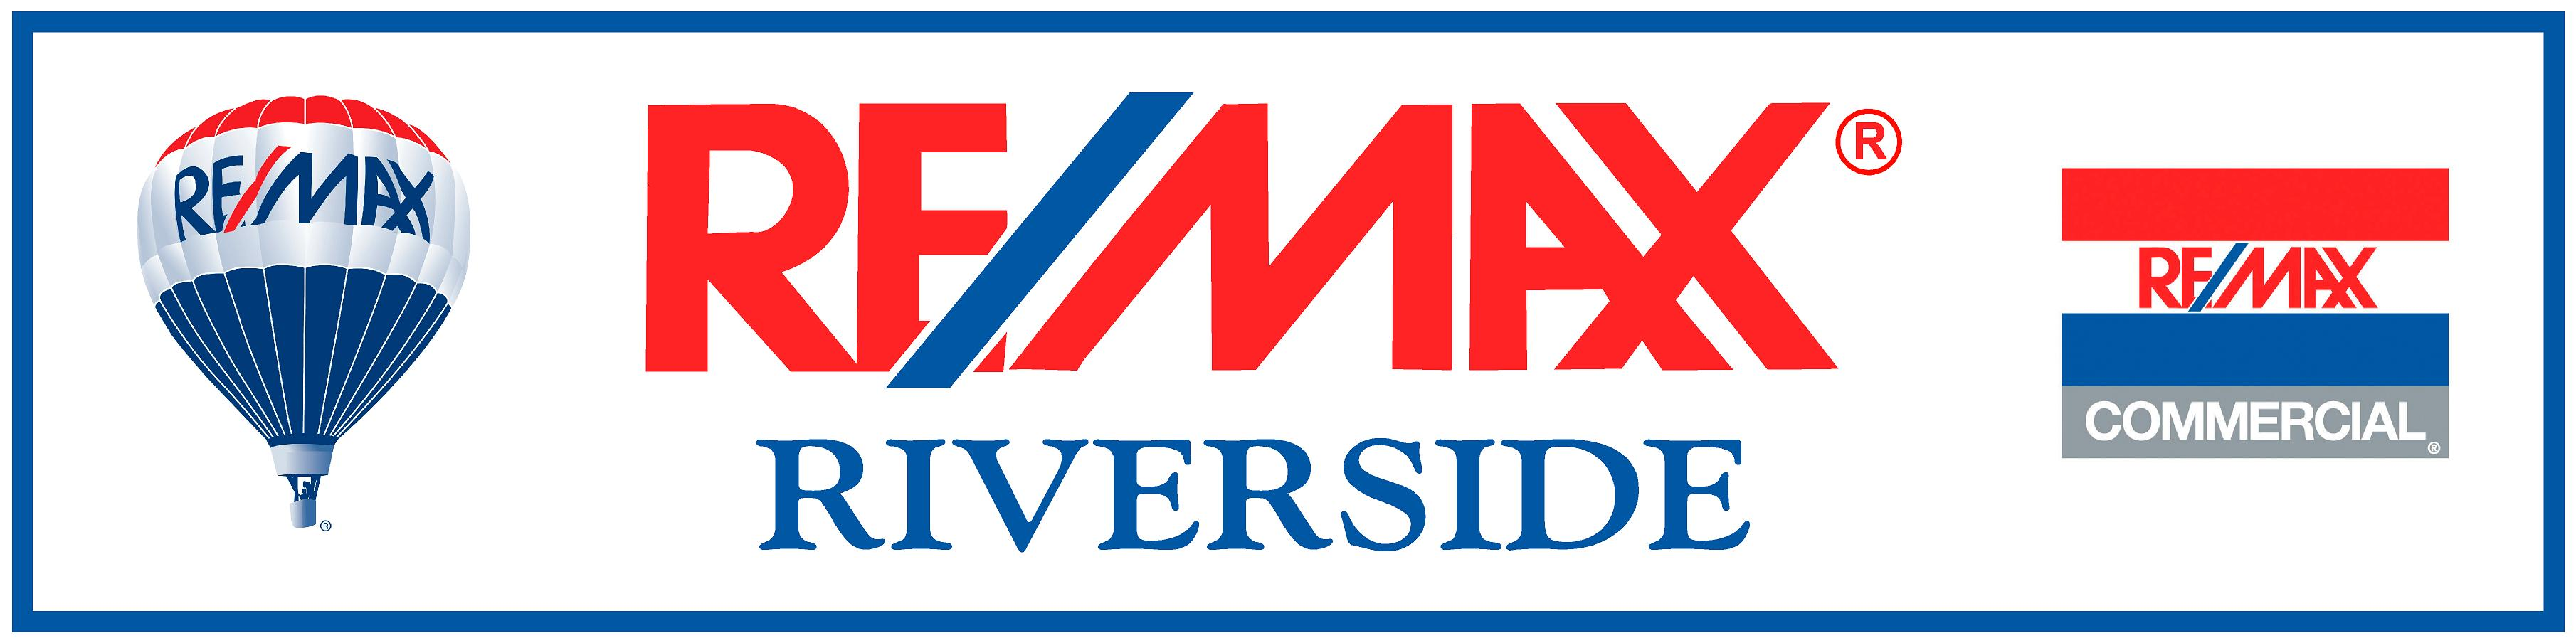 /wp-content/uploads/2013/03/REMAX-riverside-logo.jpg